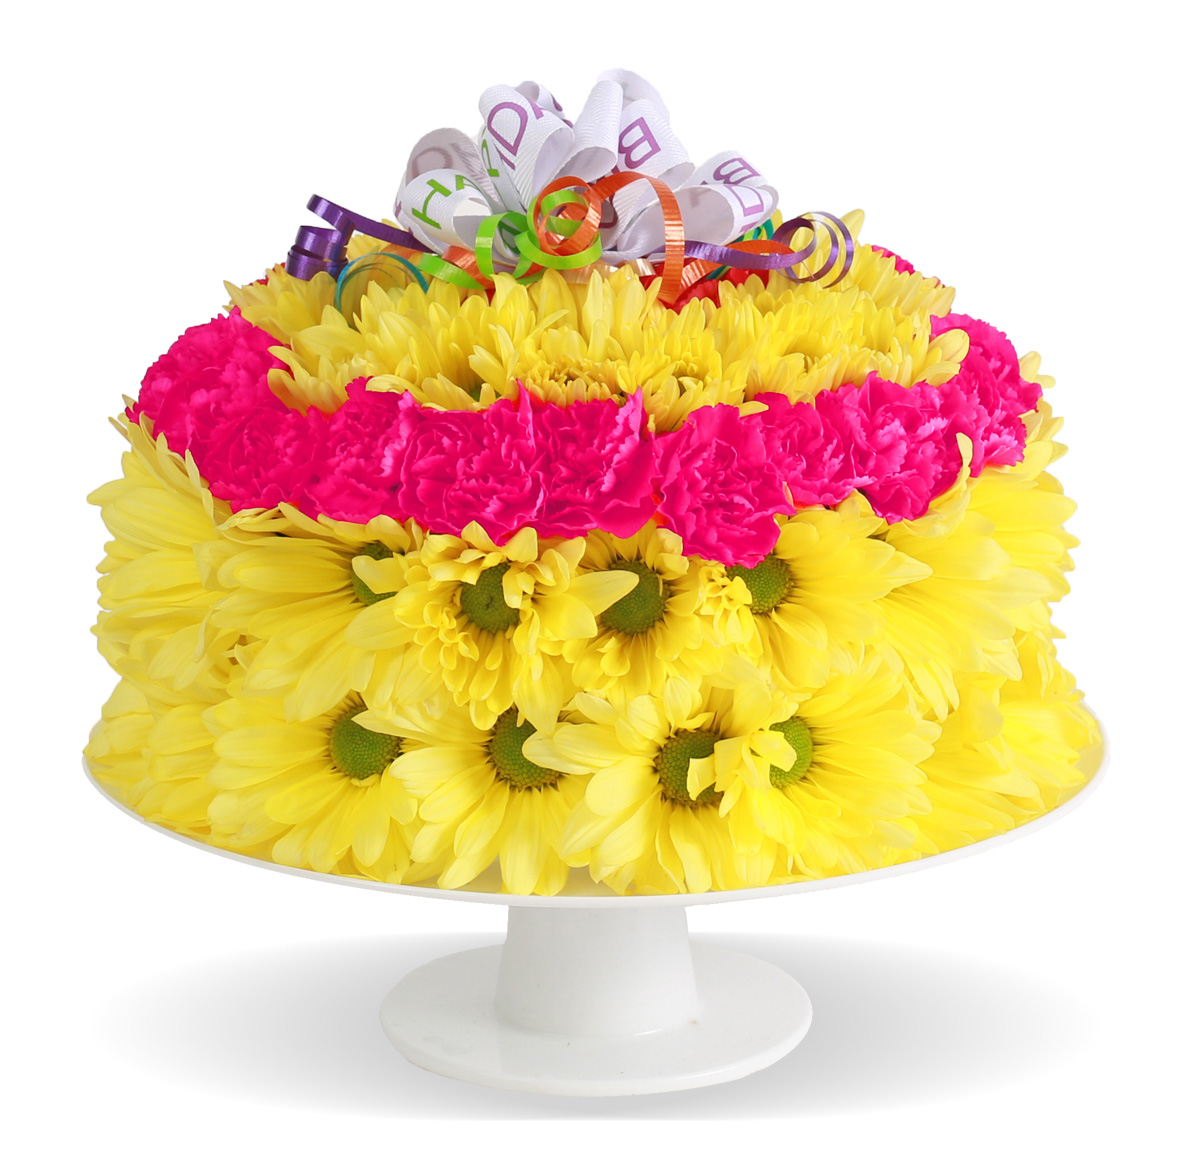 Home fresh flower birthday cake columbus oh florist flowerama fresh flower birthday cake same day delivery izmirmasajfo